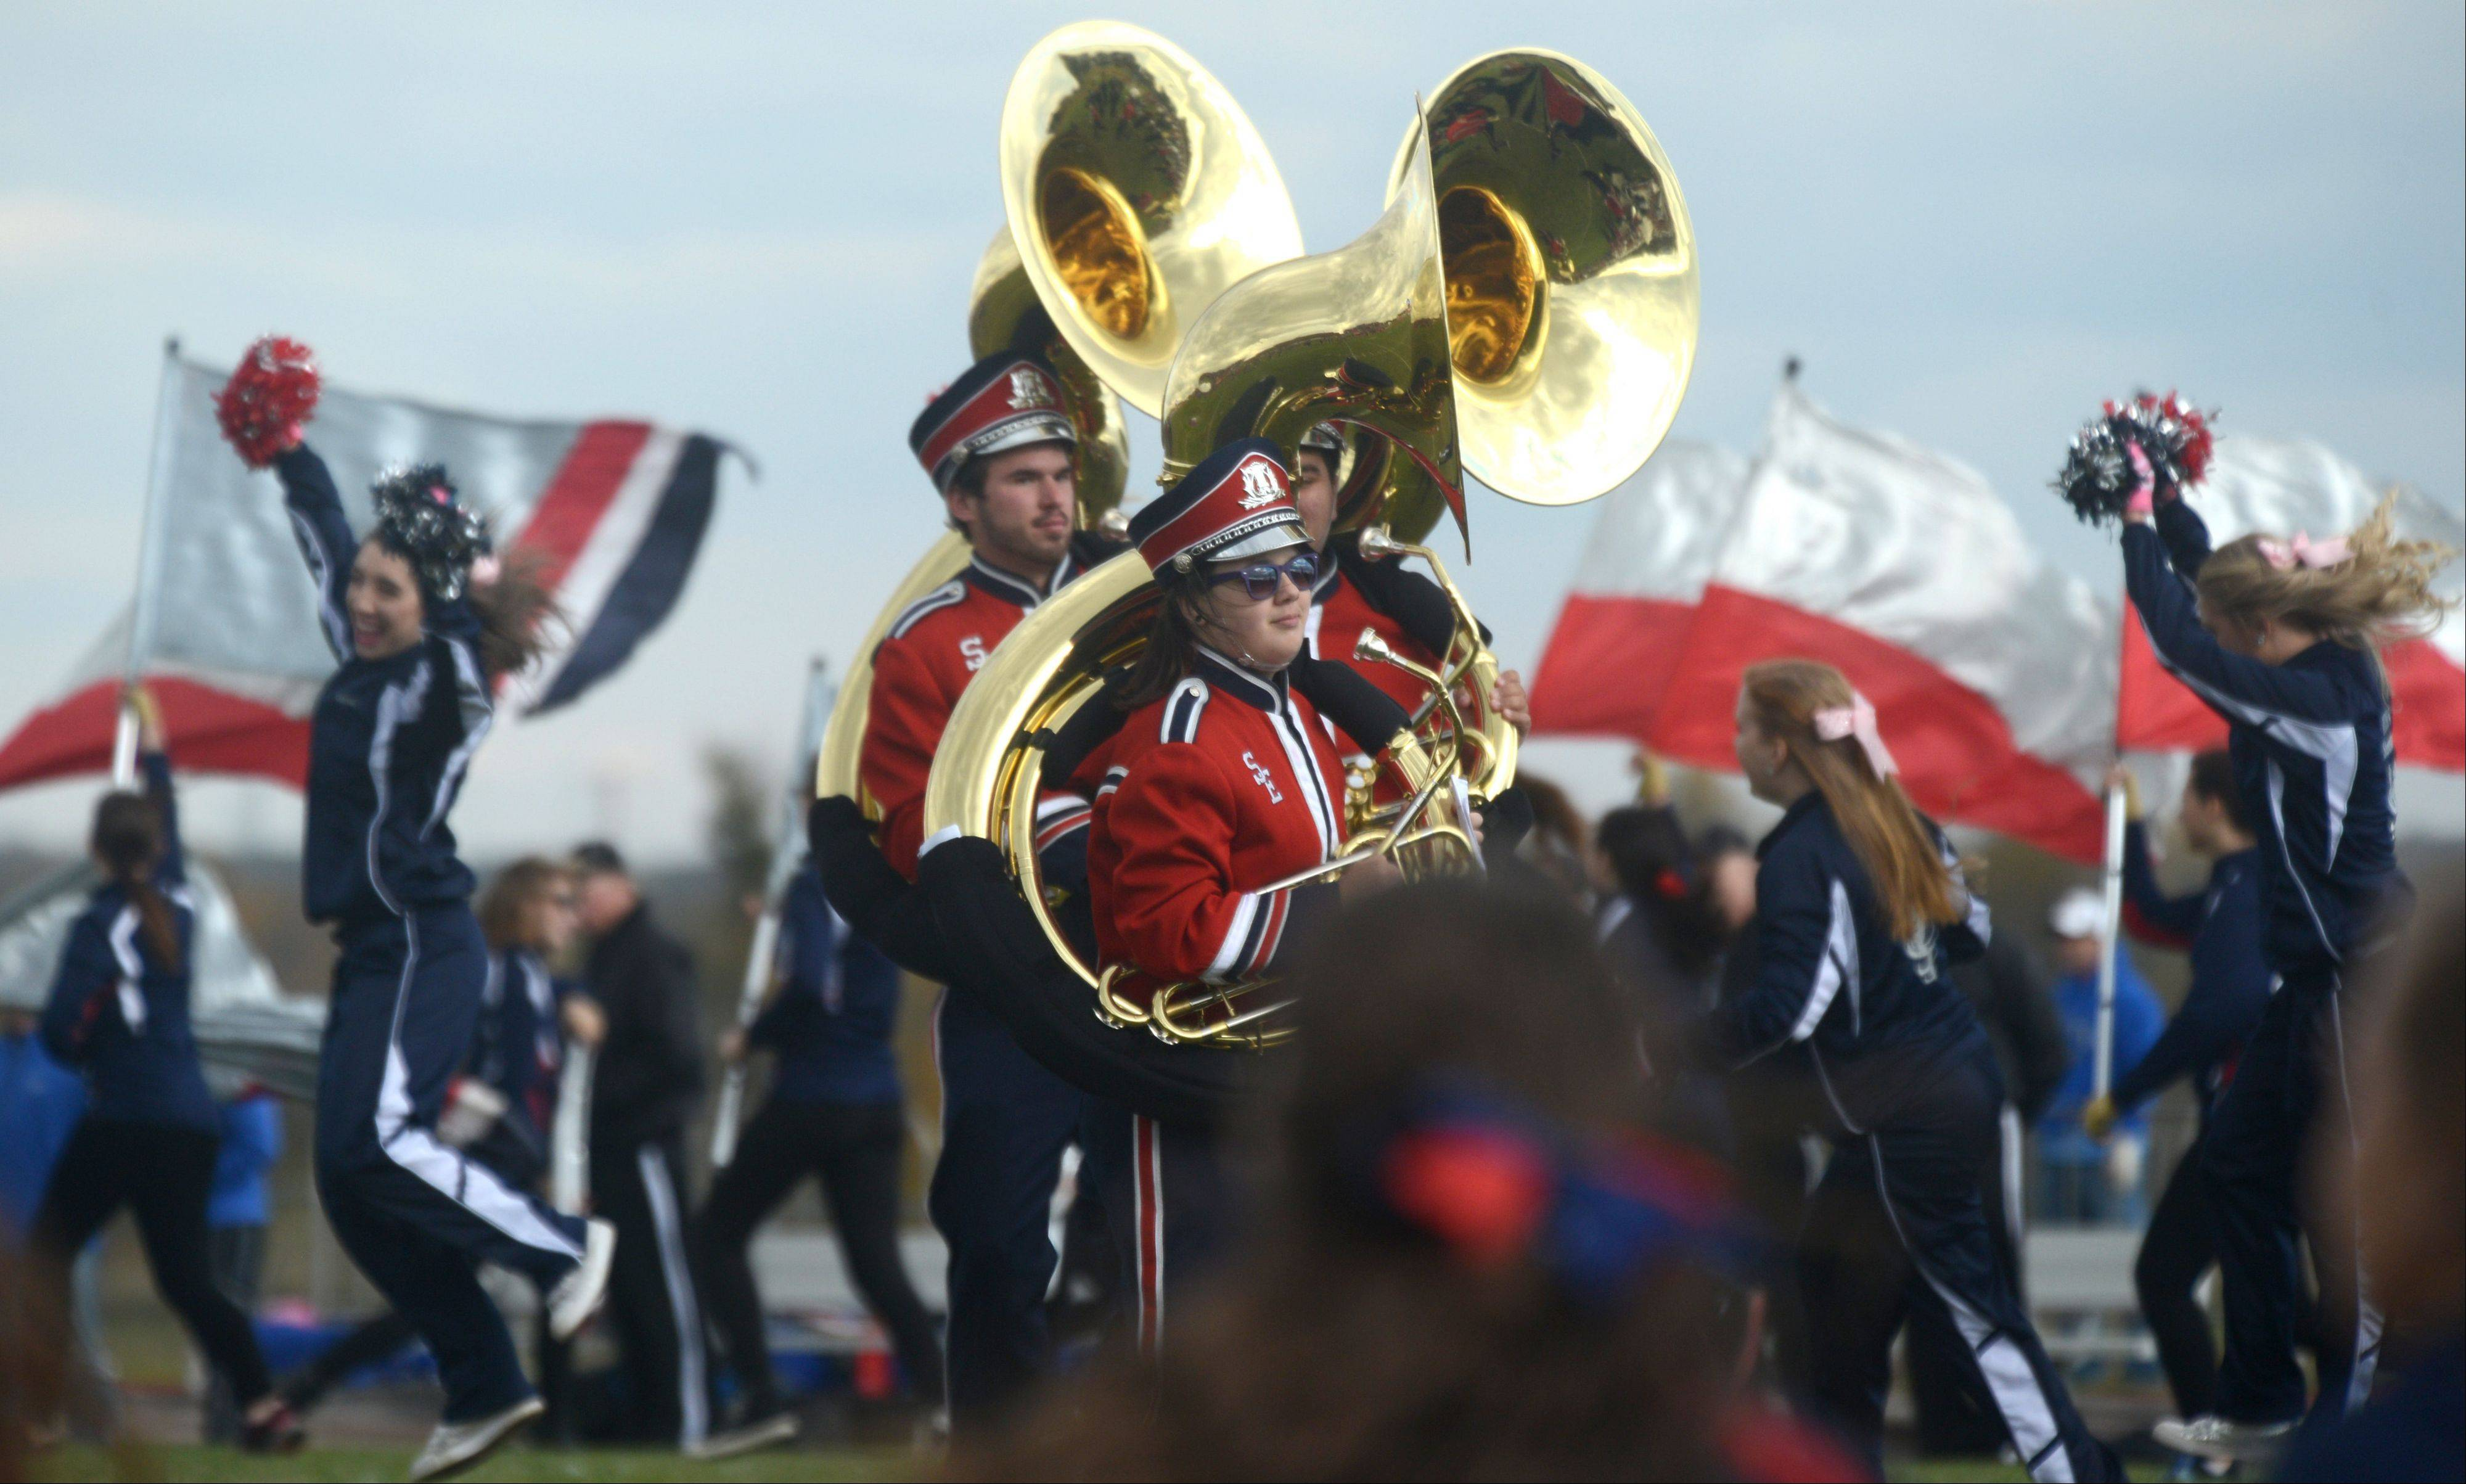 South Elgin High School band members and cheerleaders perform before a varsity football game against St. Charles North at South Elgin on Saturday afternoon.